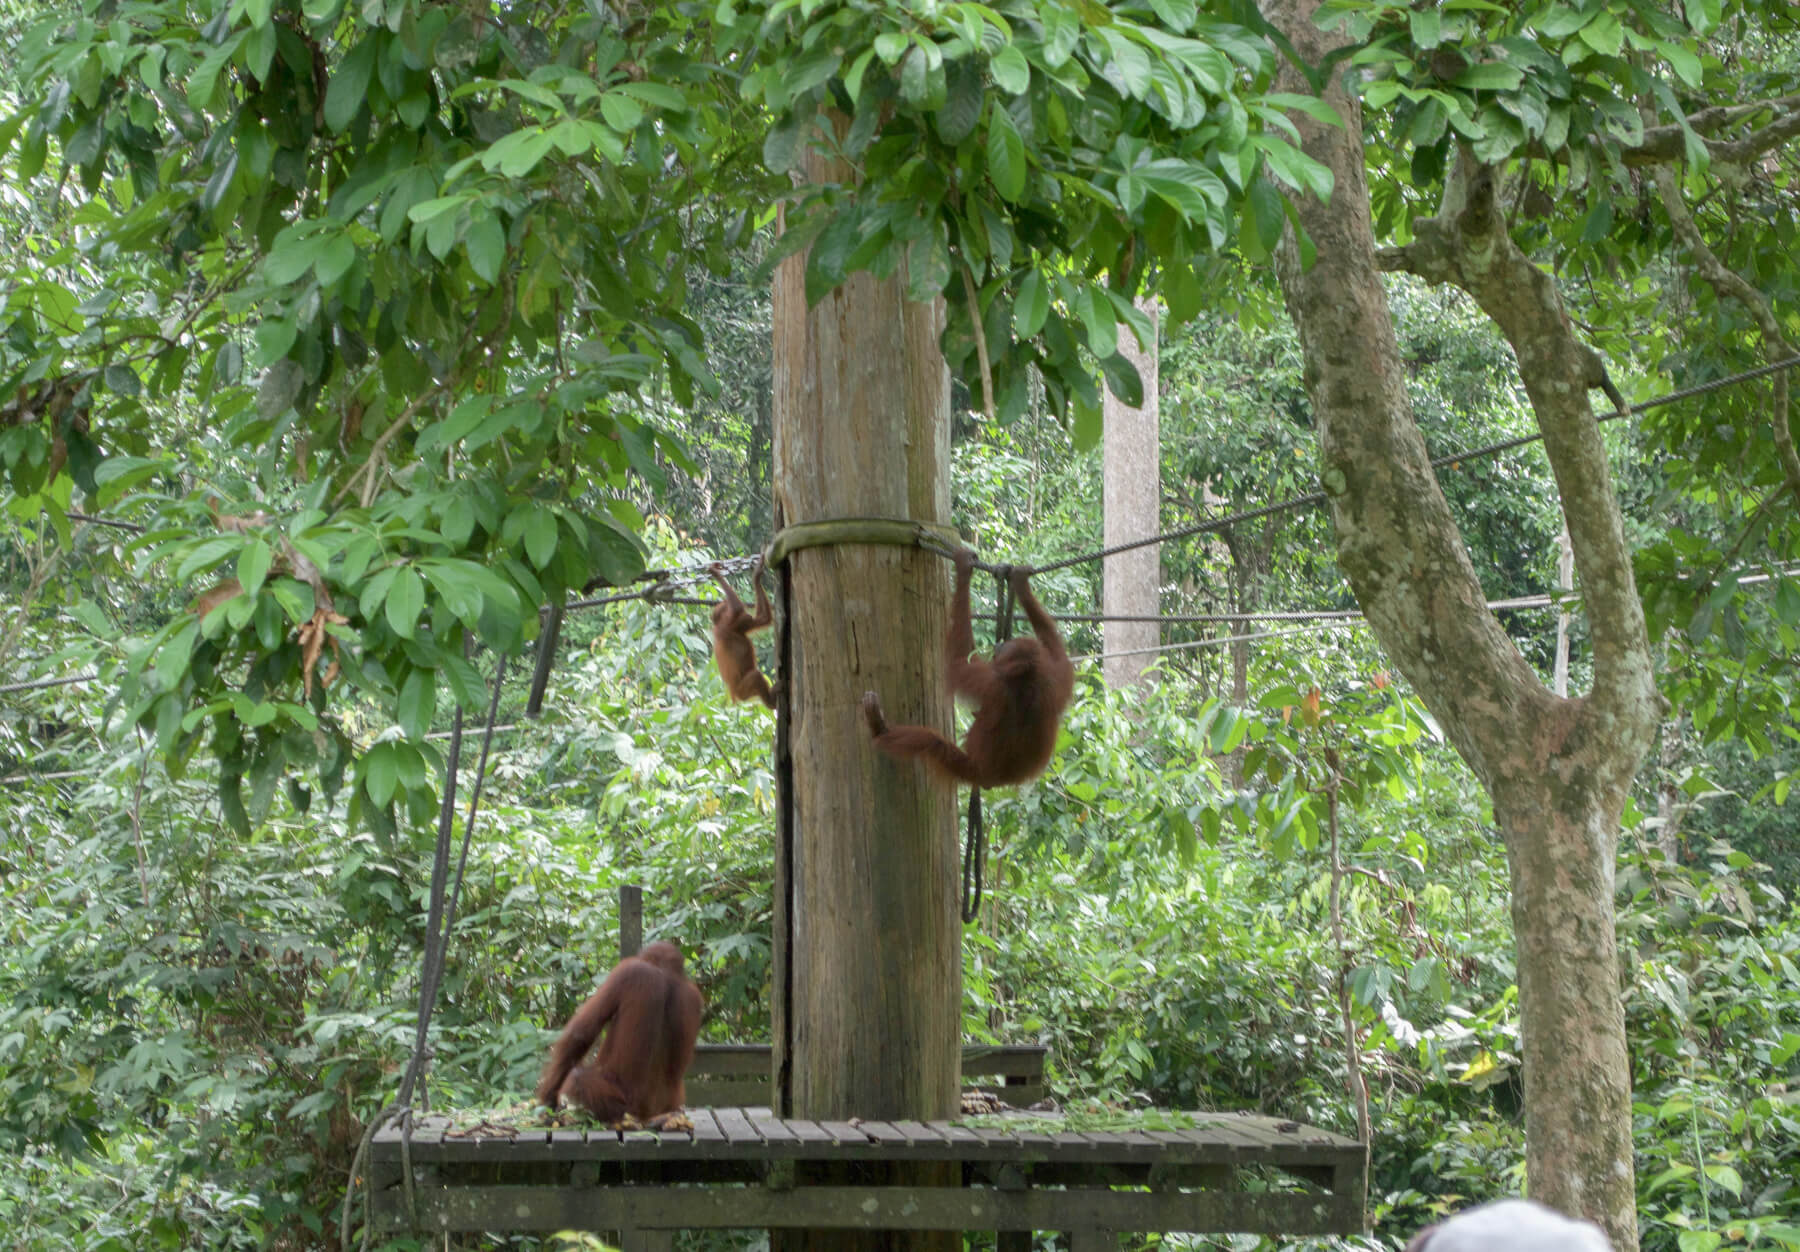 2 orangutans and a baby feeding at the Sepilok Rehabilitation Centre